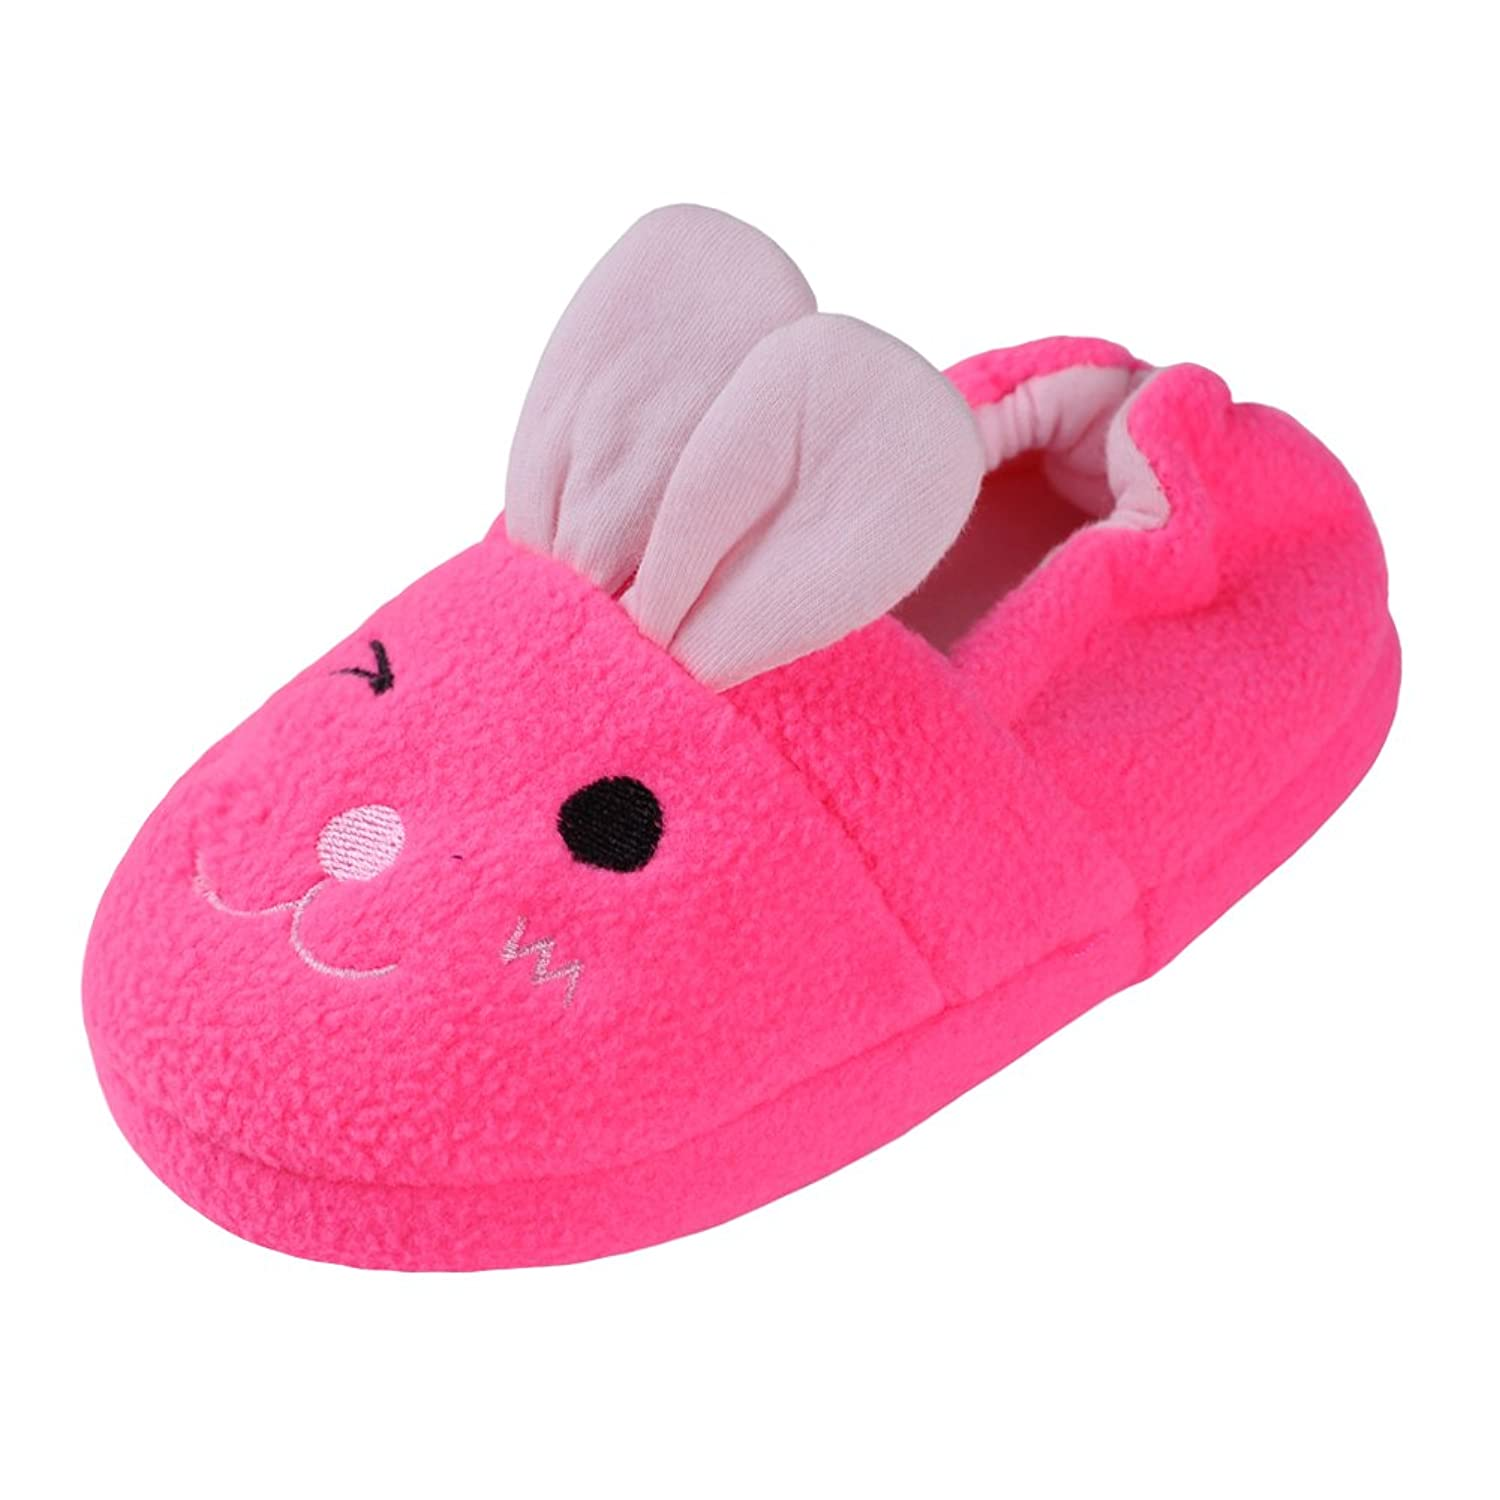 d88dd33655bab Annnowl Girls Slippers Winter Warm Shoes For Toddlers Little Kids ...